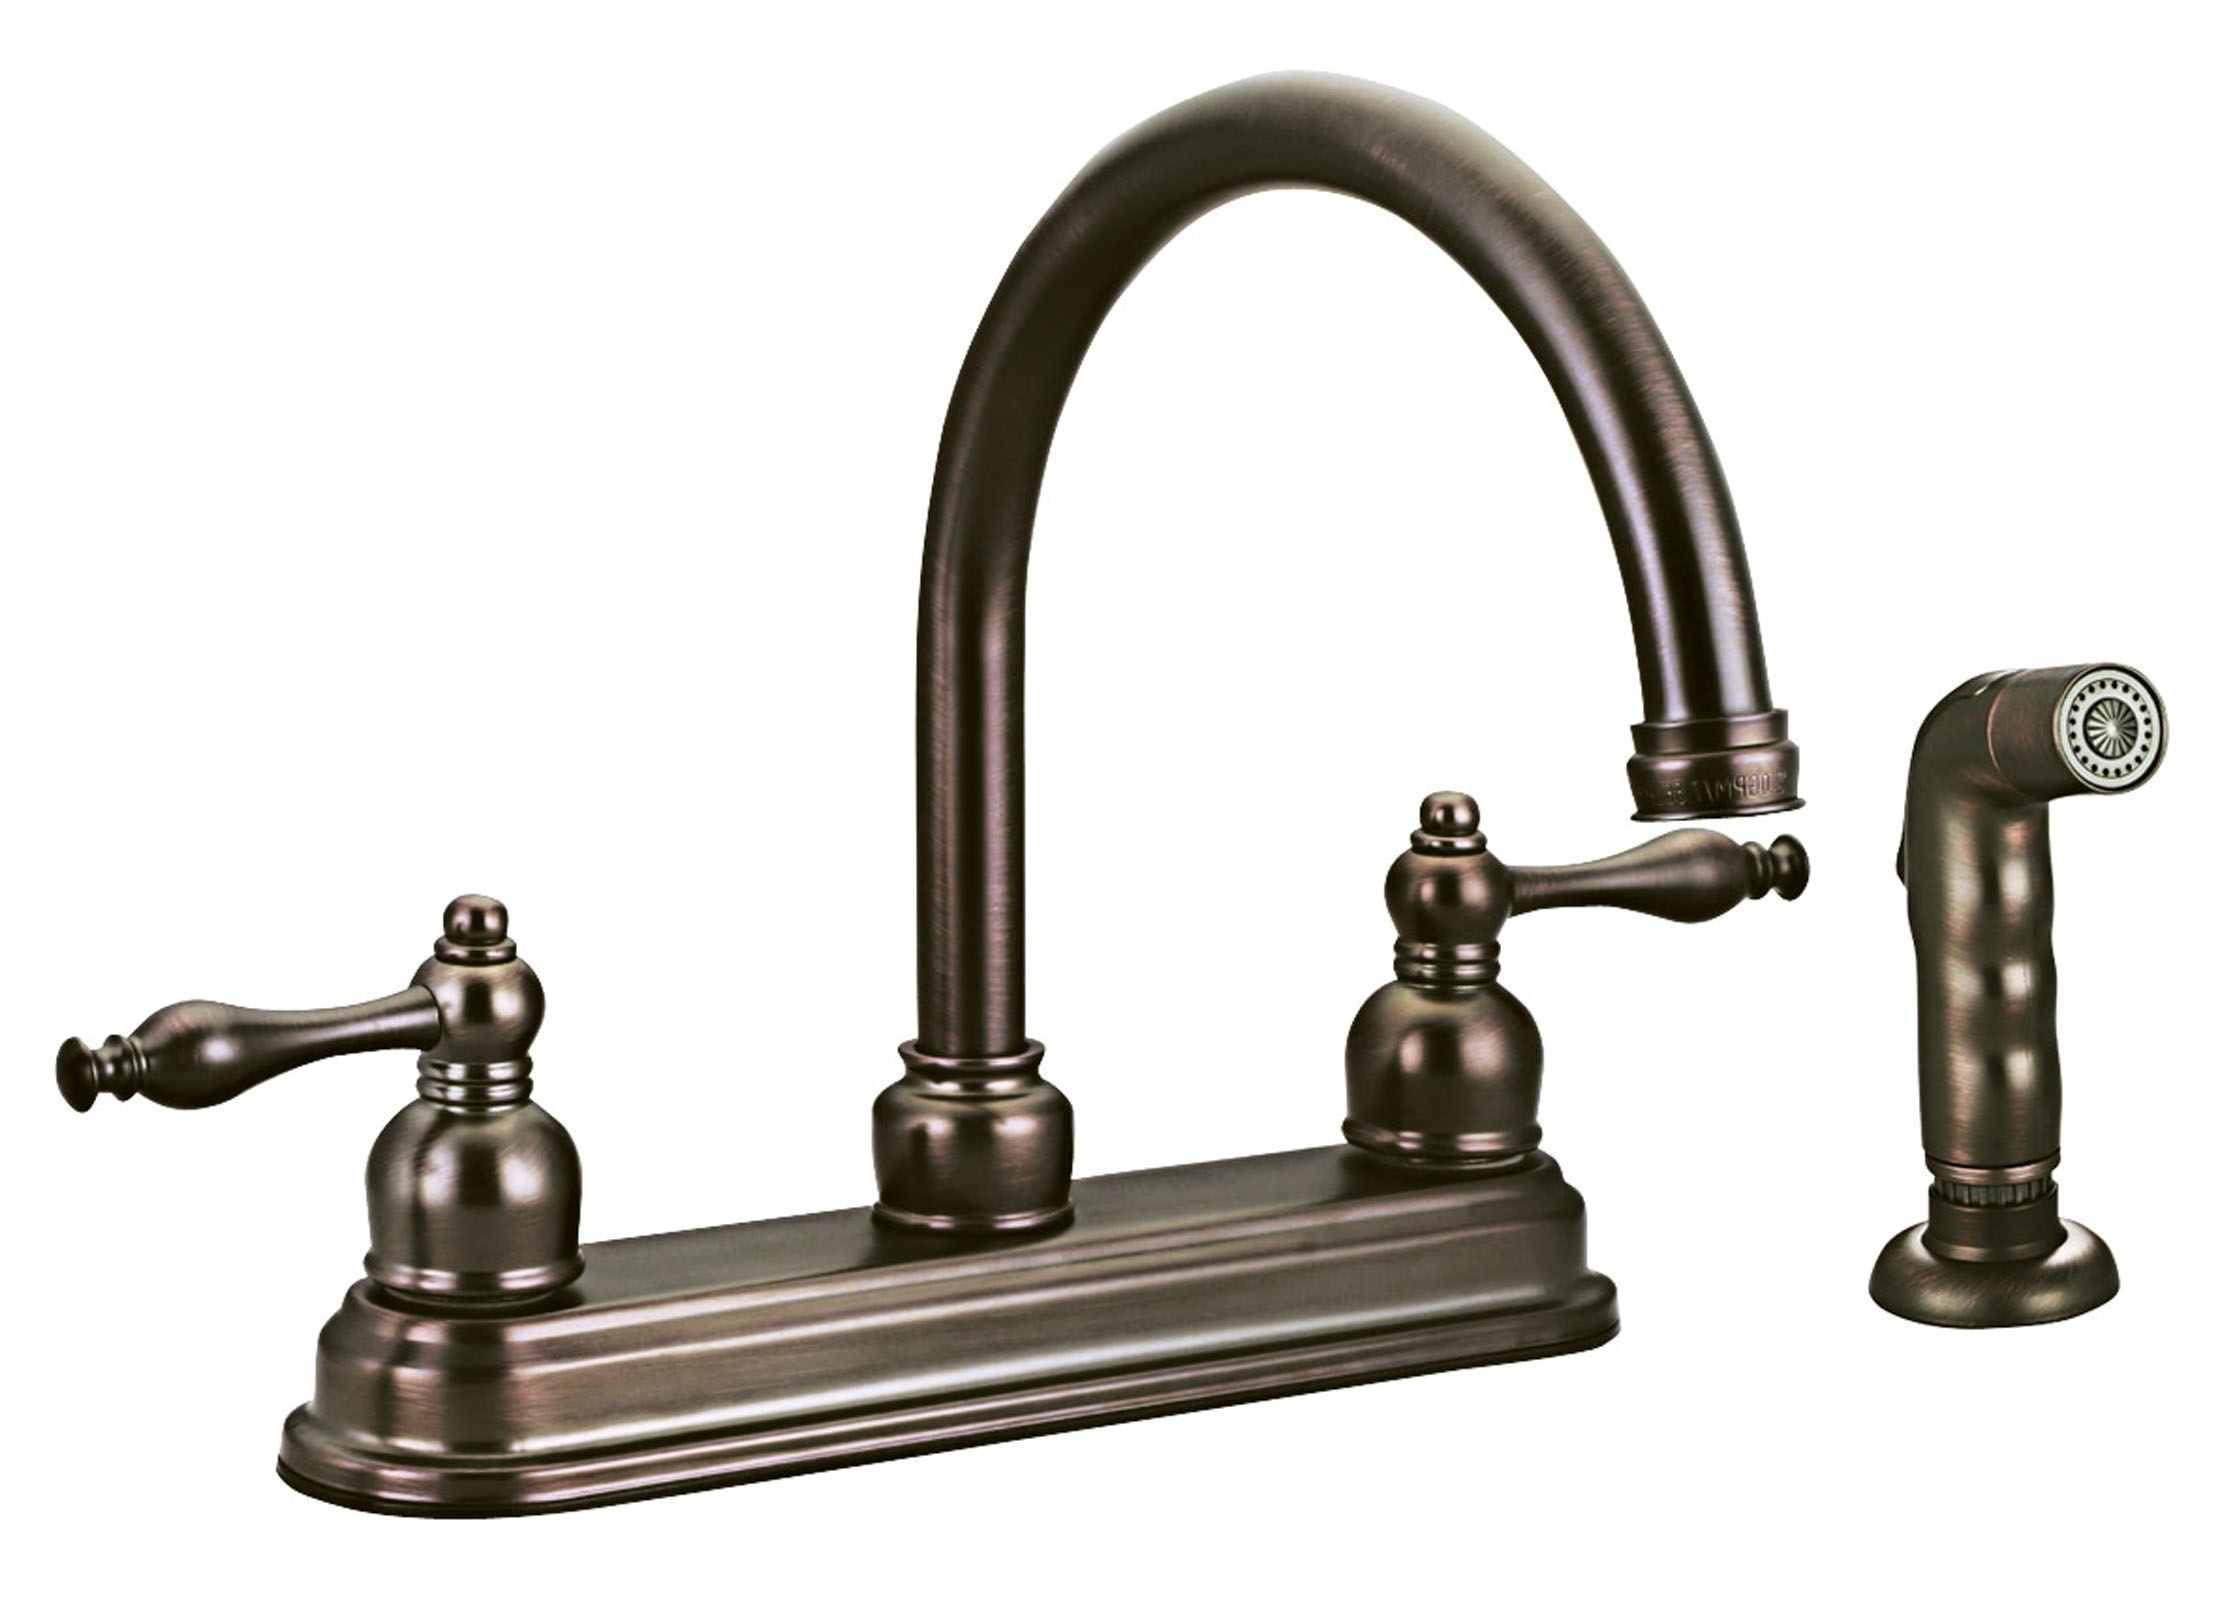 Ideas, 28 sears kitchen faucets vintage kitchen faucet sears com throughout dimensions 2220 x 1600  .